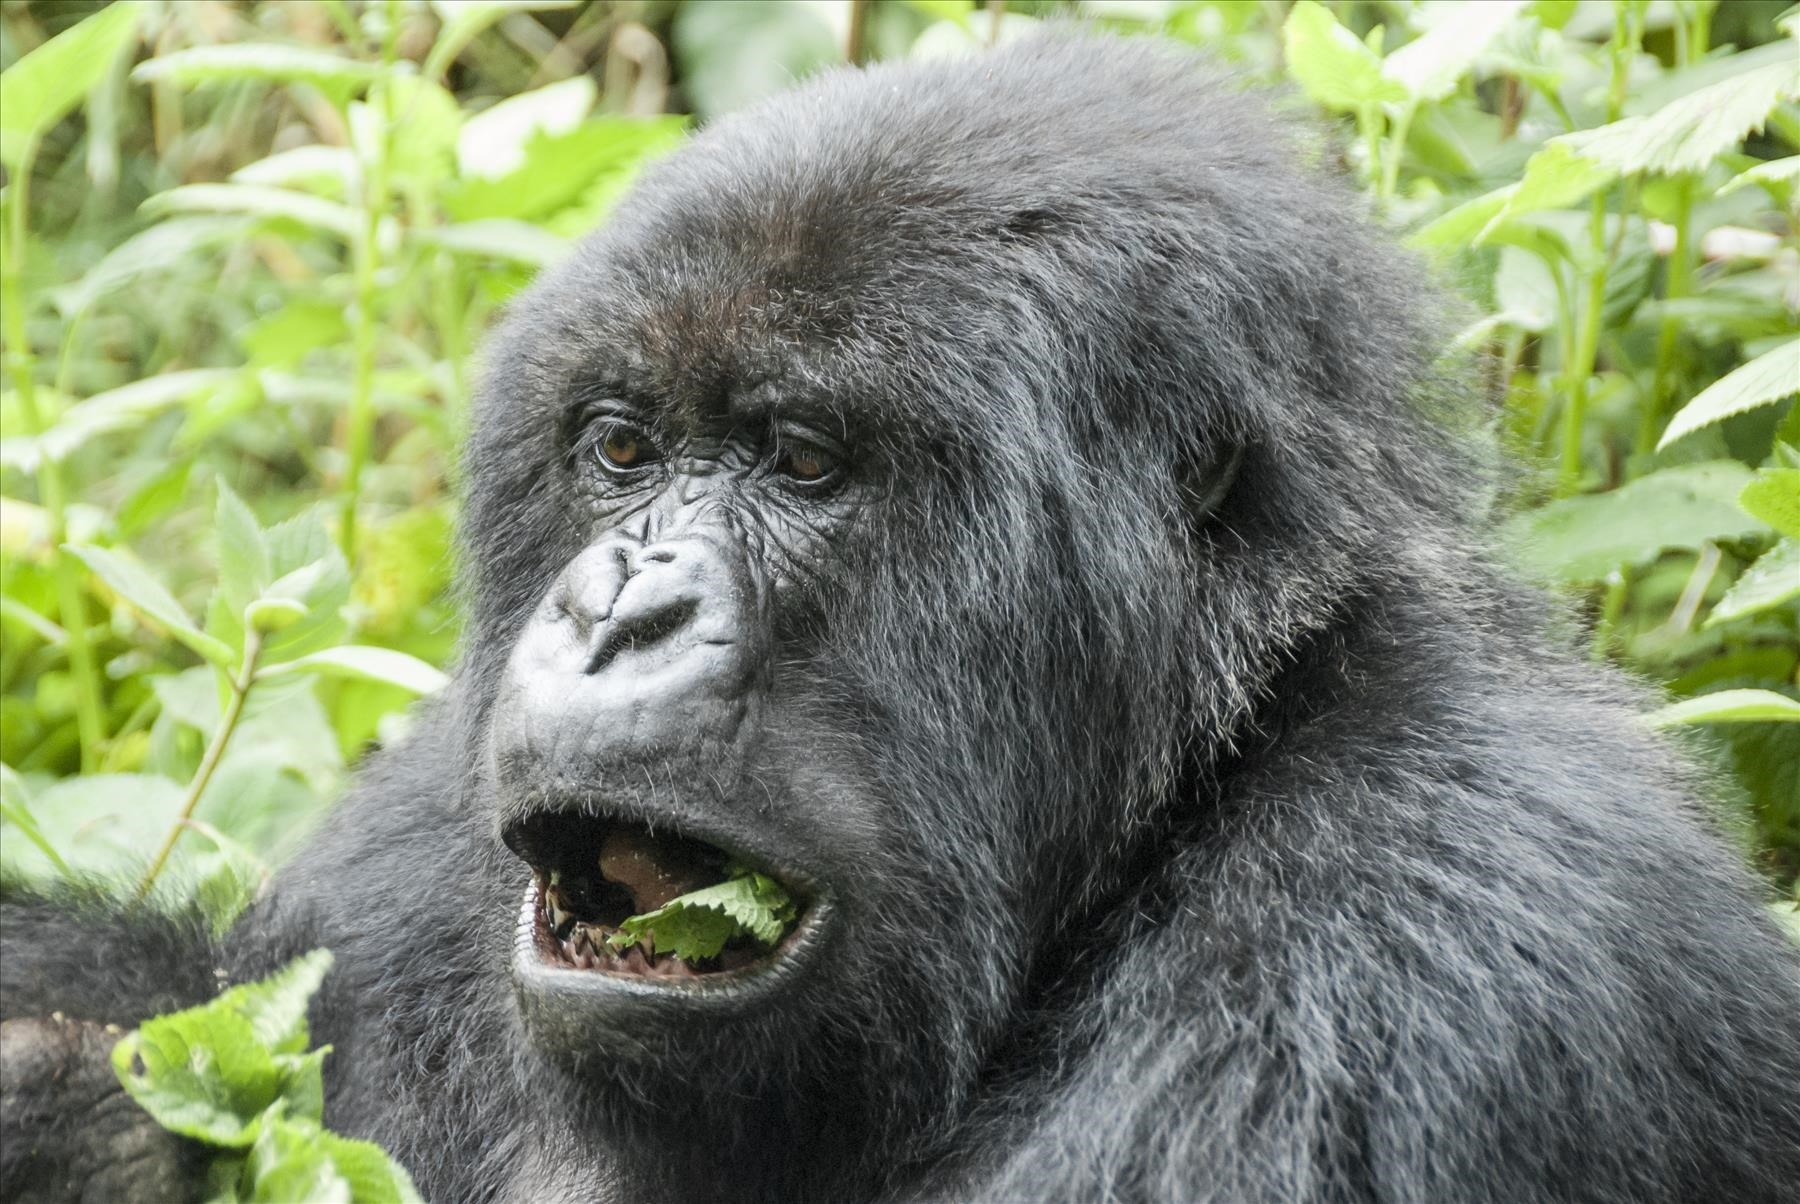 Gorilla tracking is an experience one should have at least once in a lifetime